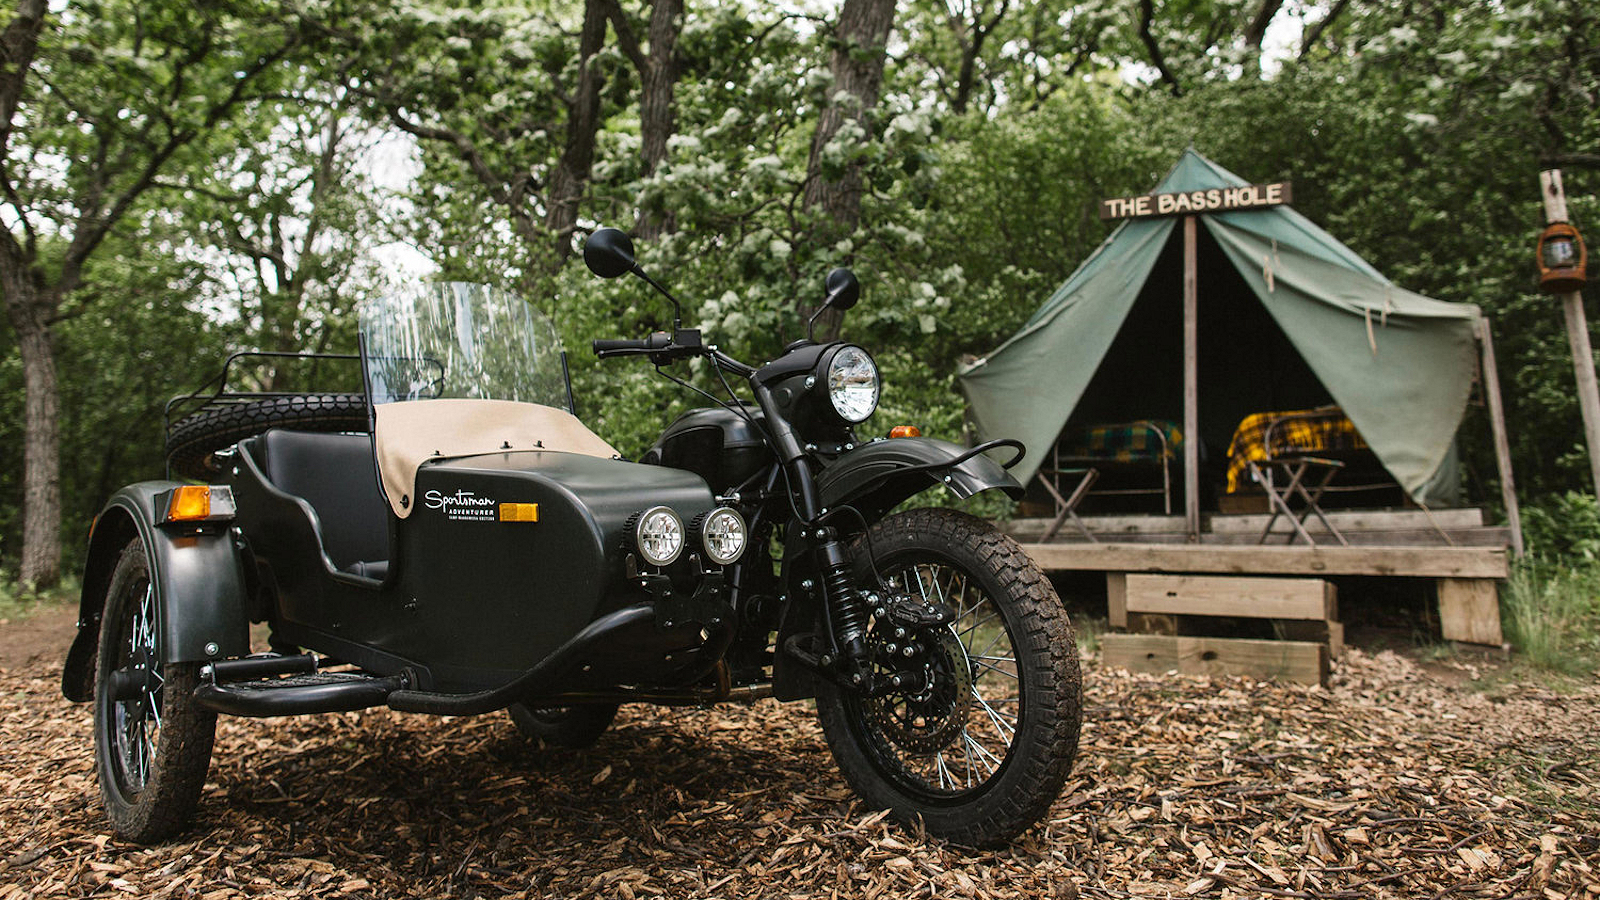 2019 Ural Gear Up Pictures, Photos, Wallpapers.